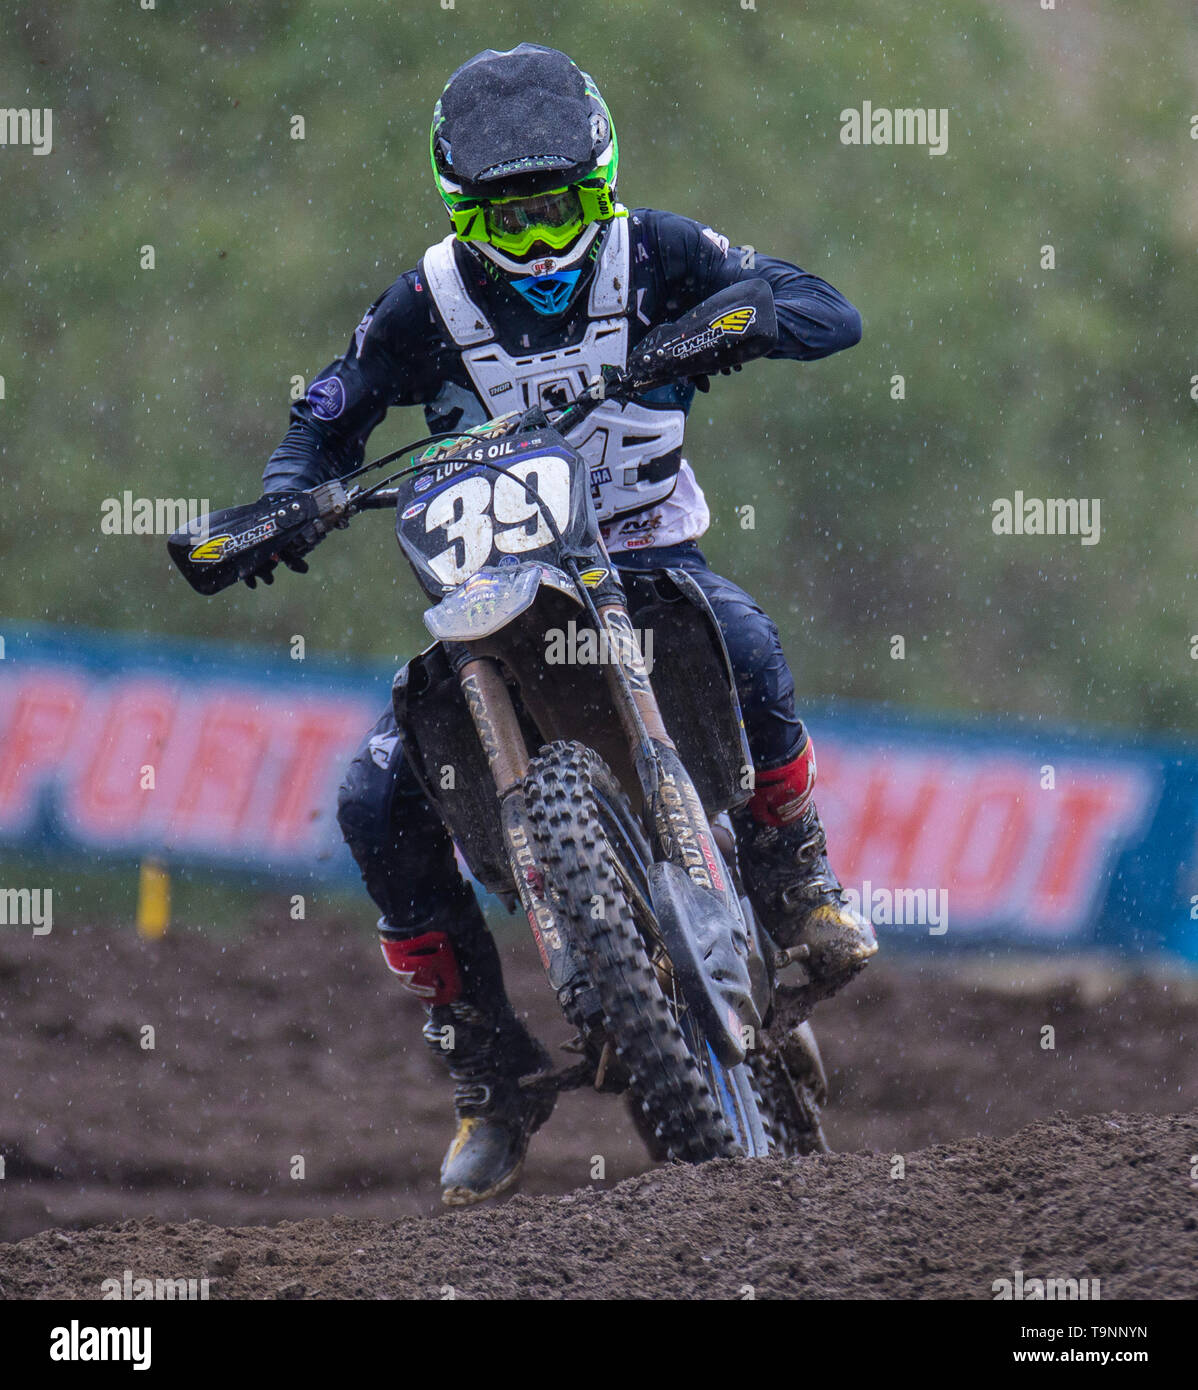 Rancho Cordova, CA U.S. 18th May, 2019. A. : # 39 Colt Nichols coming out of section 16 during the Lucas Oil Pro 250 Motocross Championship at Hangtown Motocross Classic Rancho Cordova, CA Thurman James/CSM/Alamy Live News - Stock Image